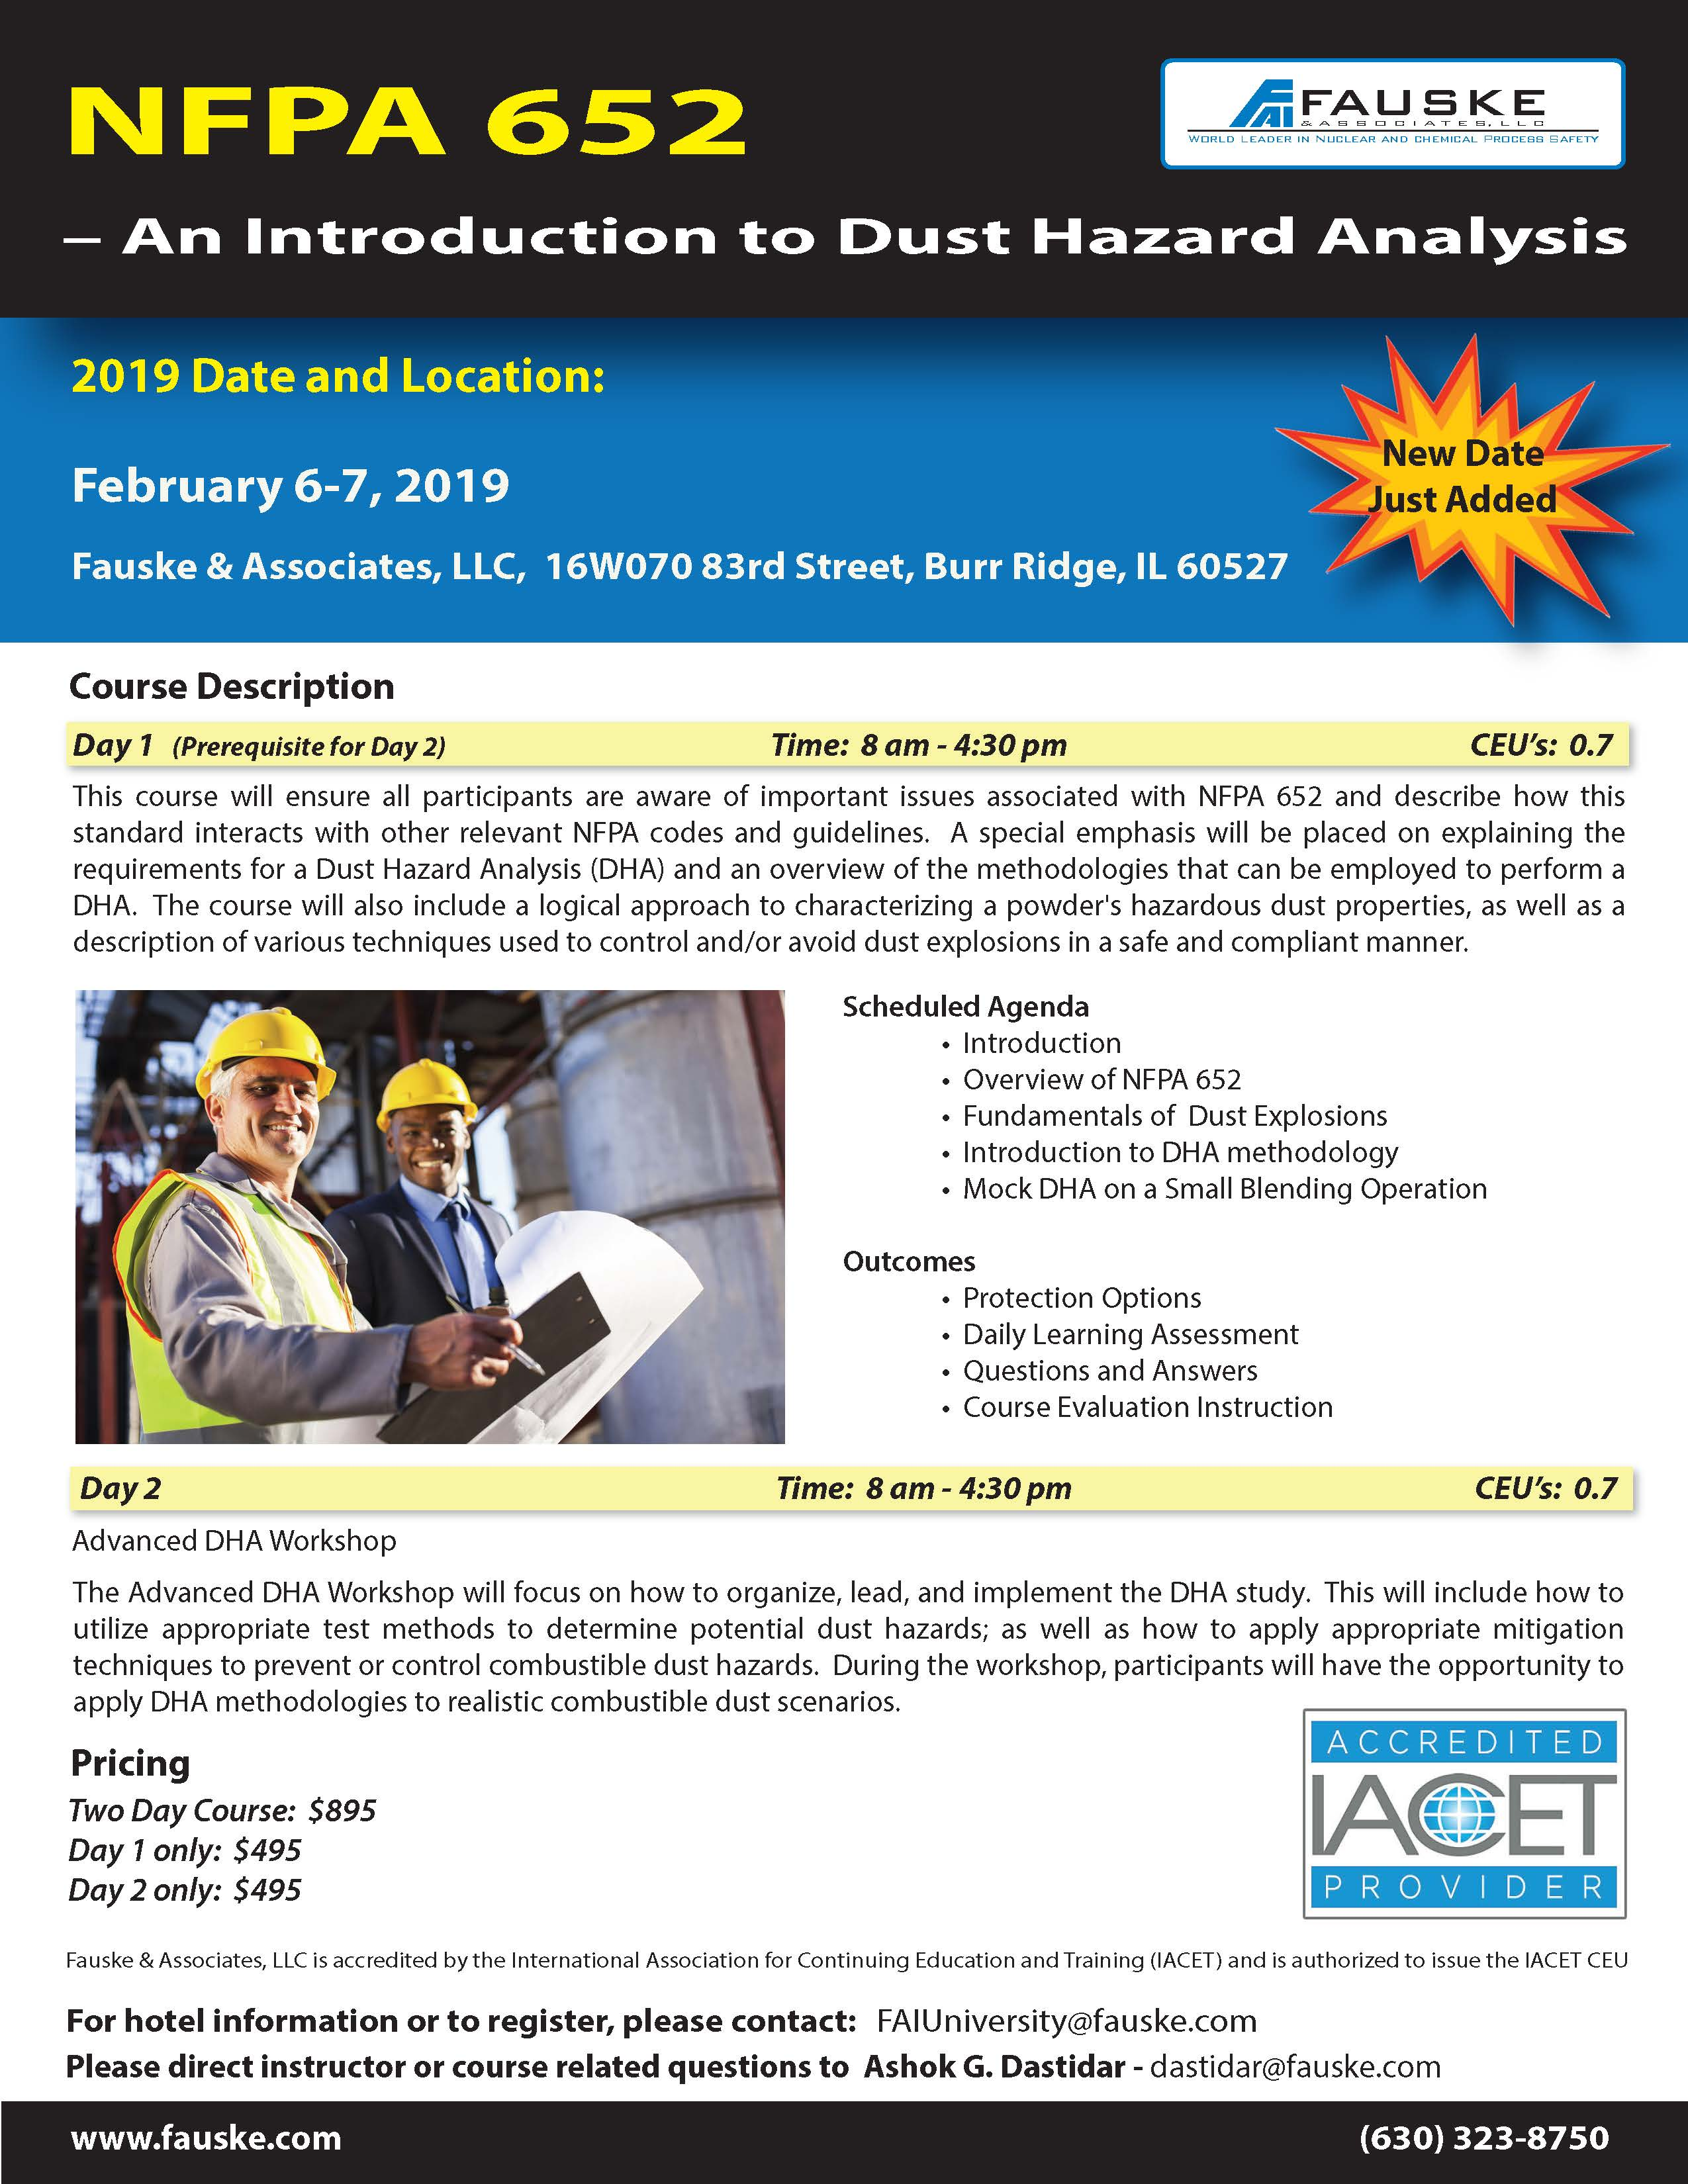 NFPA 652 combustible dust control and dust hazard analysis course